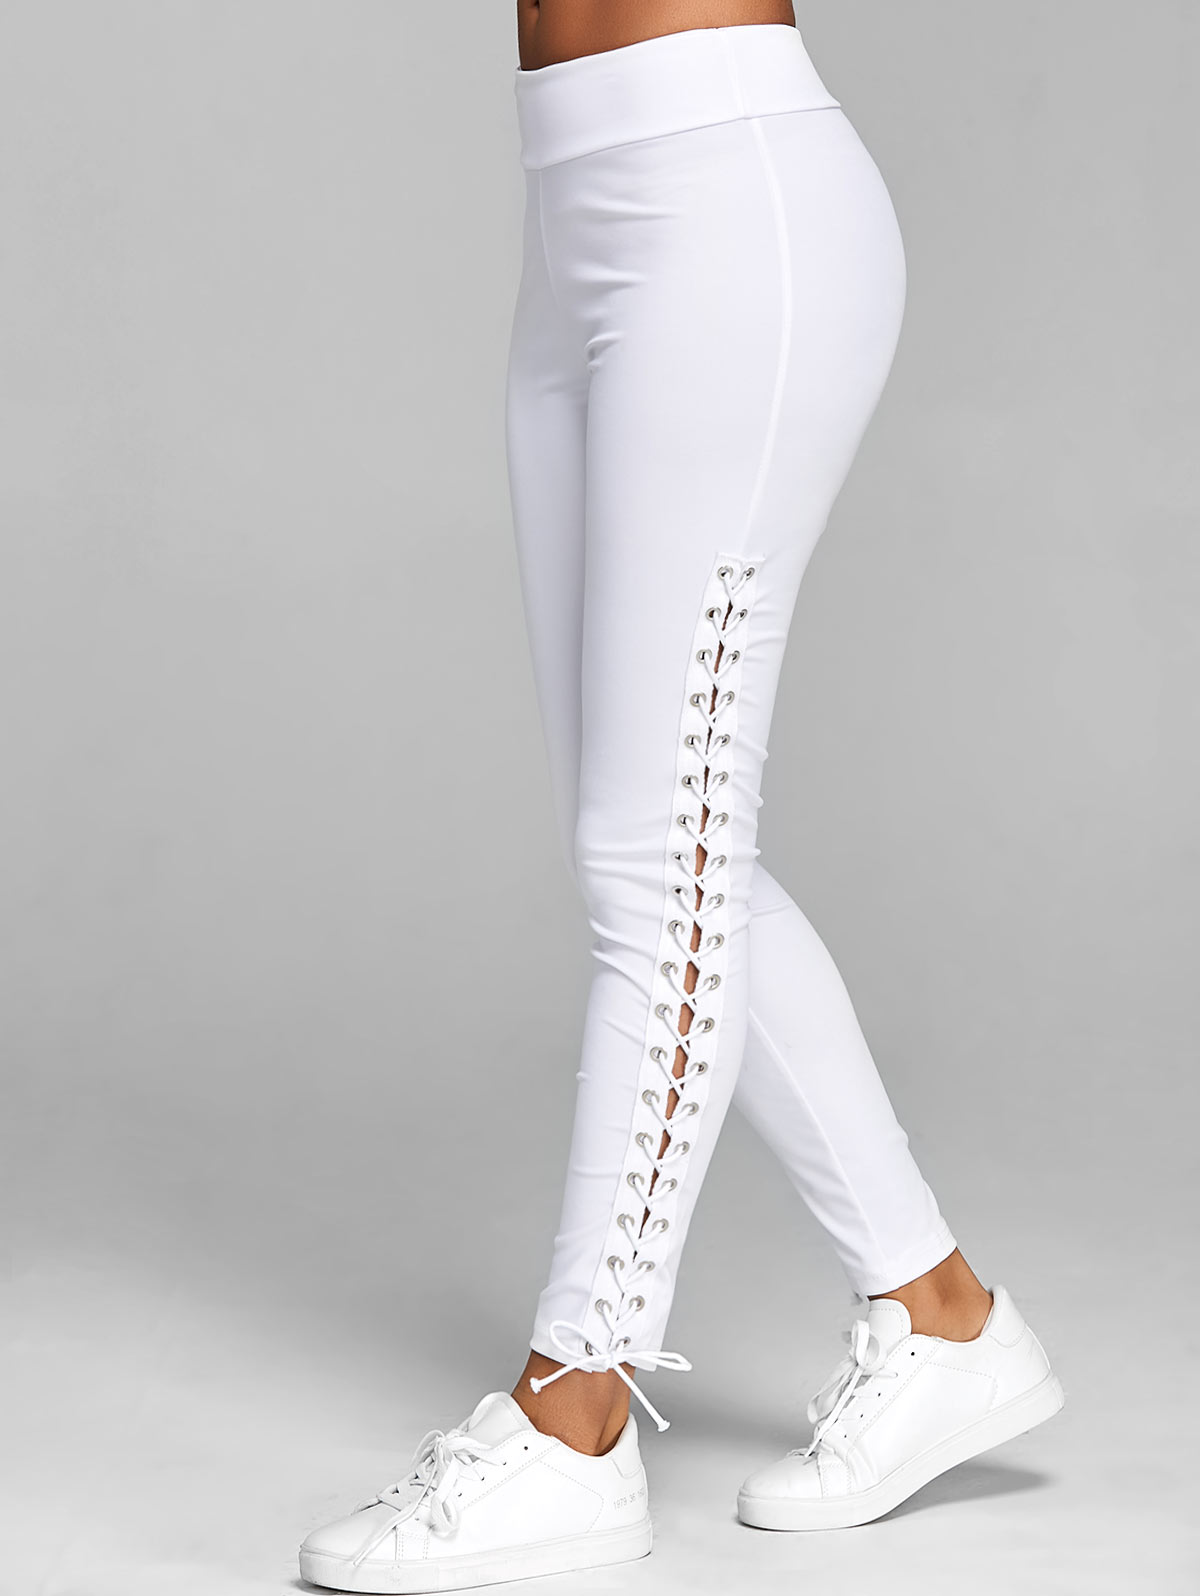 Wipalo Lace Up Grommet Leggings 2019 Skinny Leggings Women Pencil Pants Trouser Black White Leggings Streetwear 5XL Cargo Pant